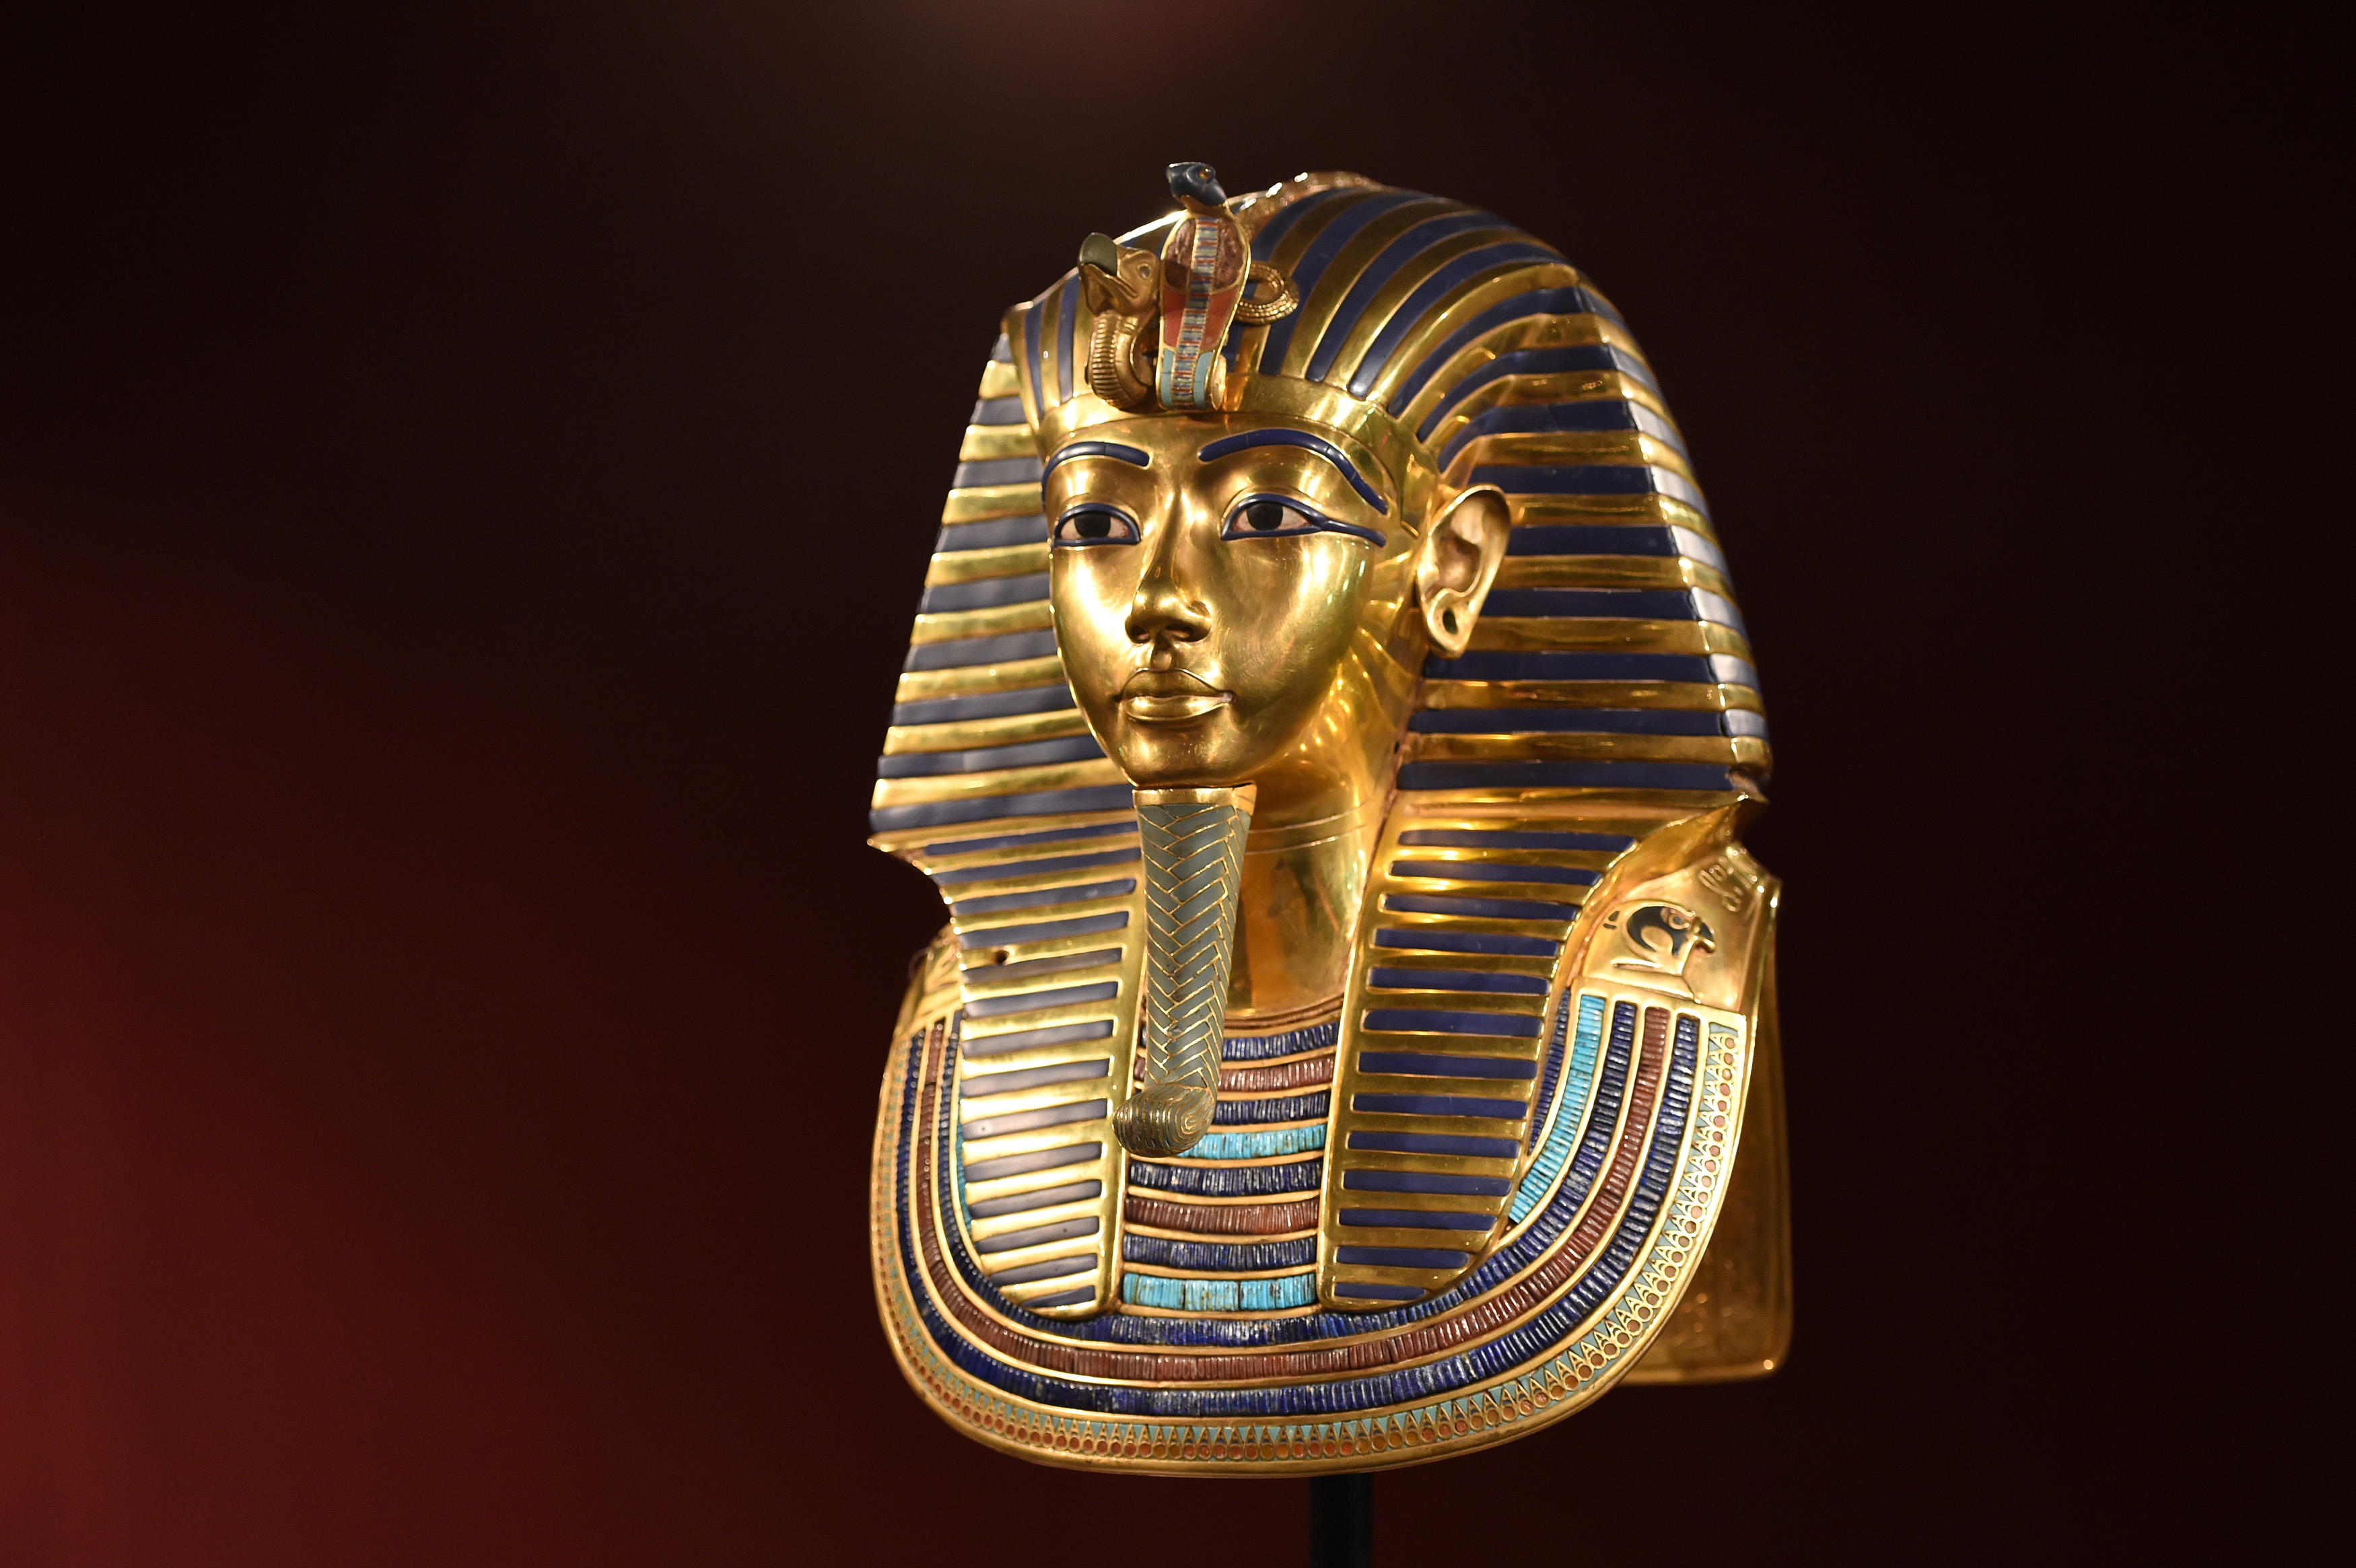 Radar Points to Secret Chamber in King Tut's Tomb